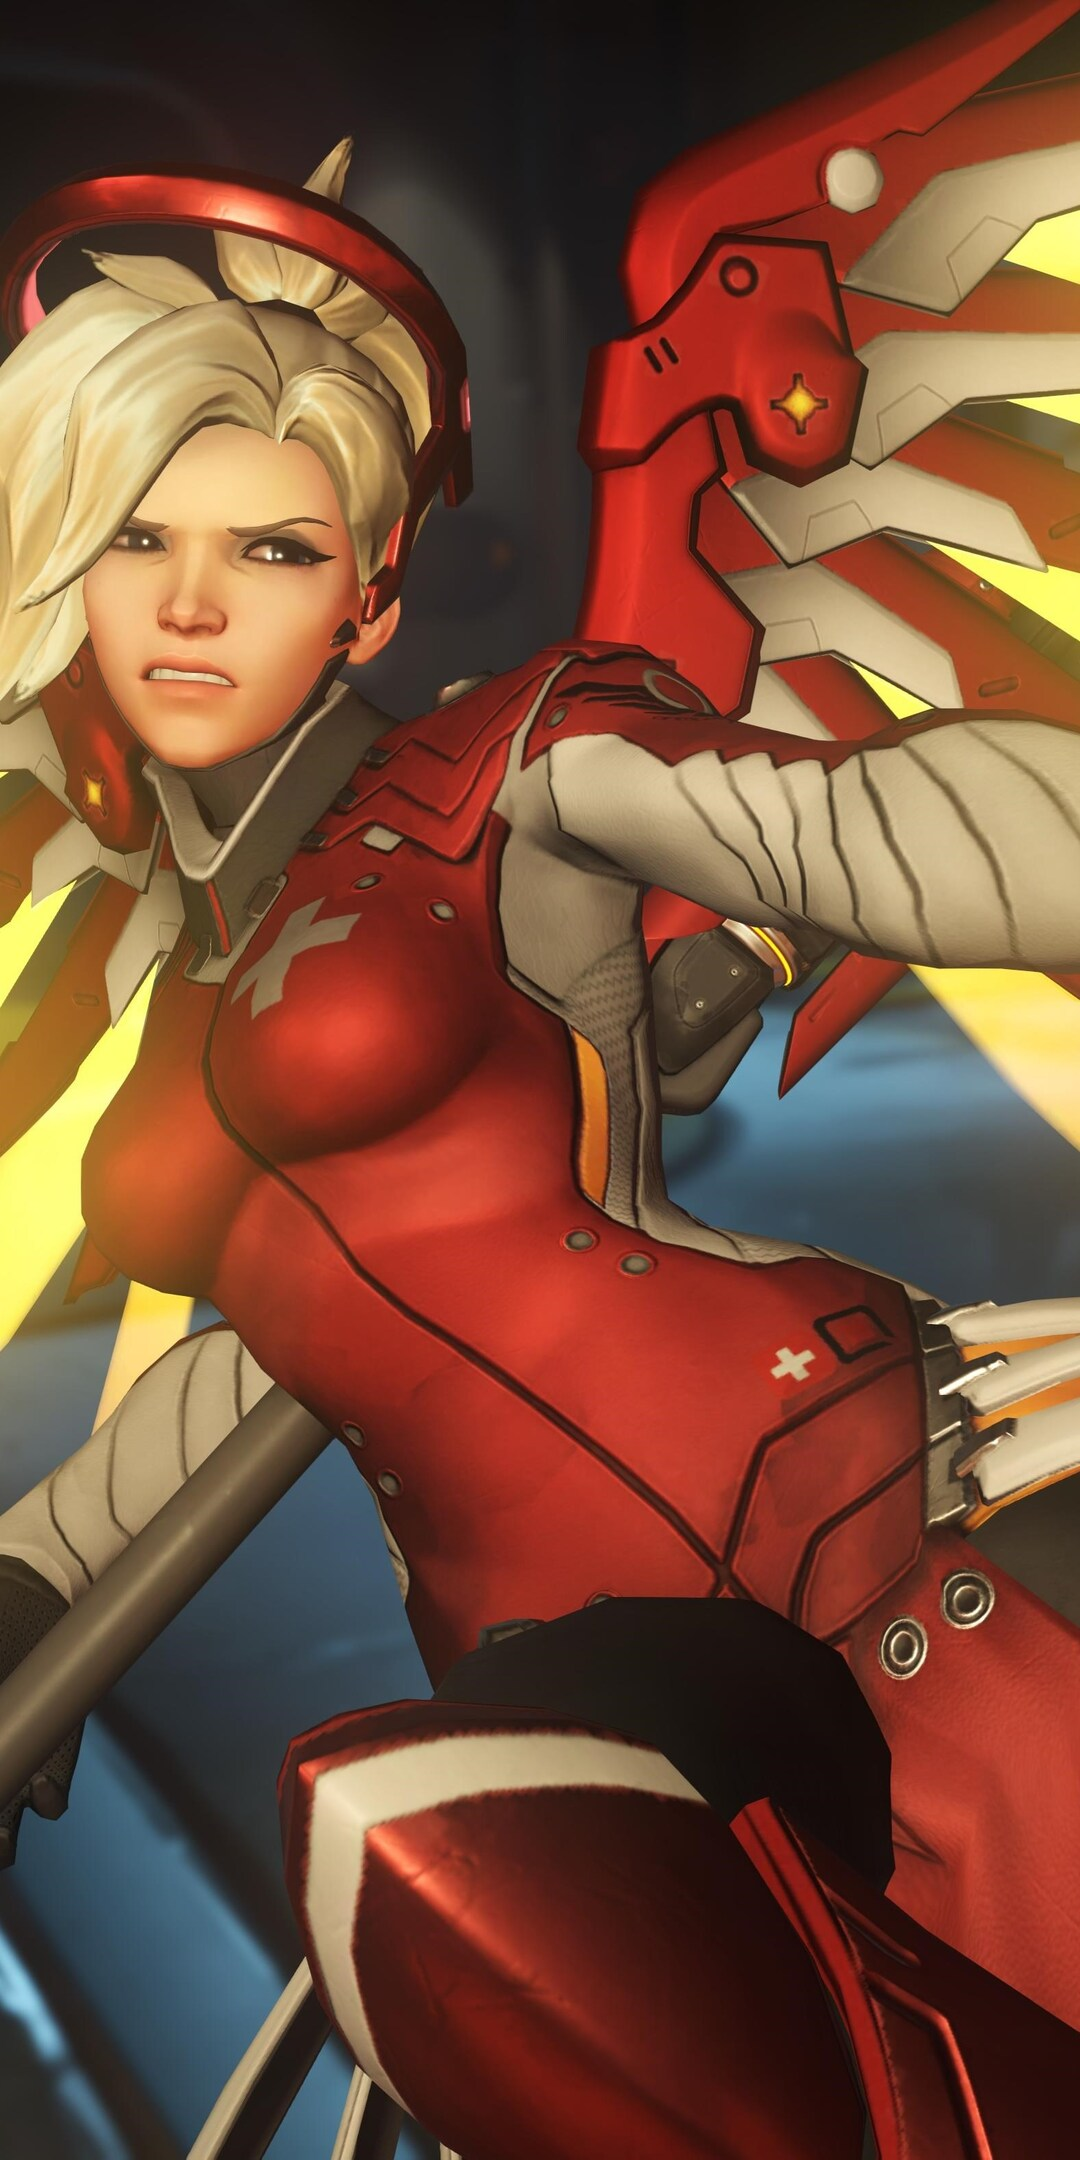 overwatch-mercy-image.jpg